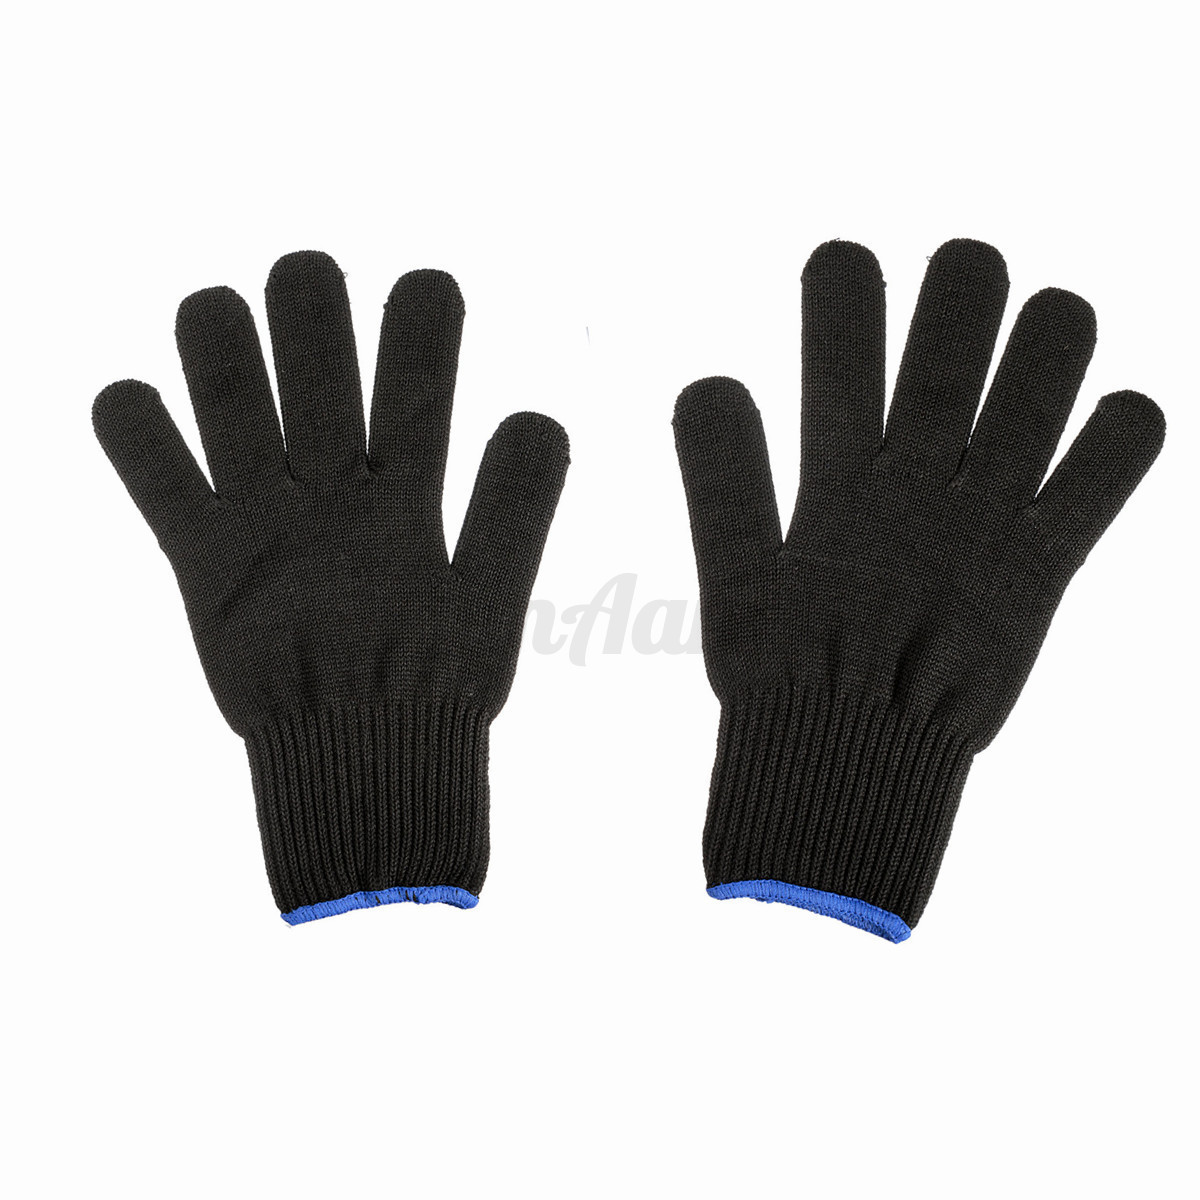 heat resistant gloves for hair styling uk hairdressing straighteners hair curling styling protective 4033